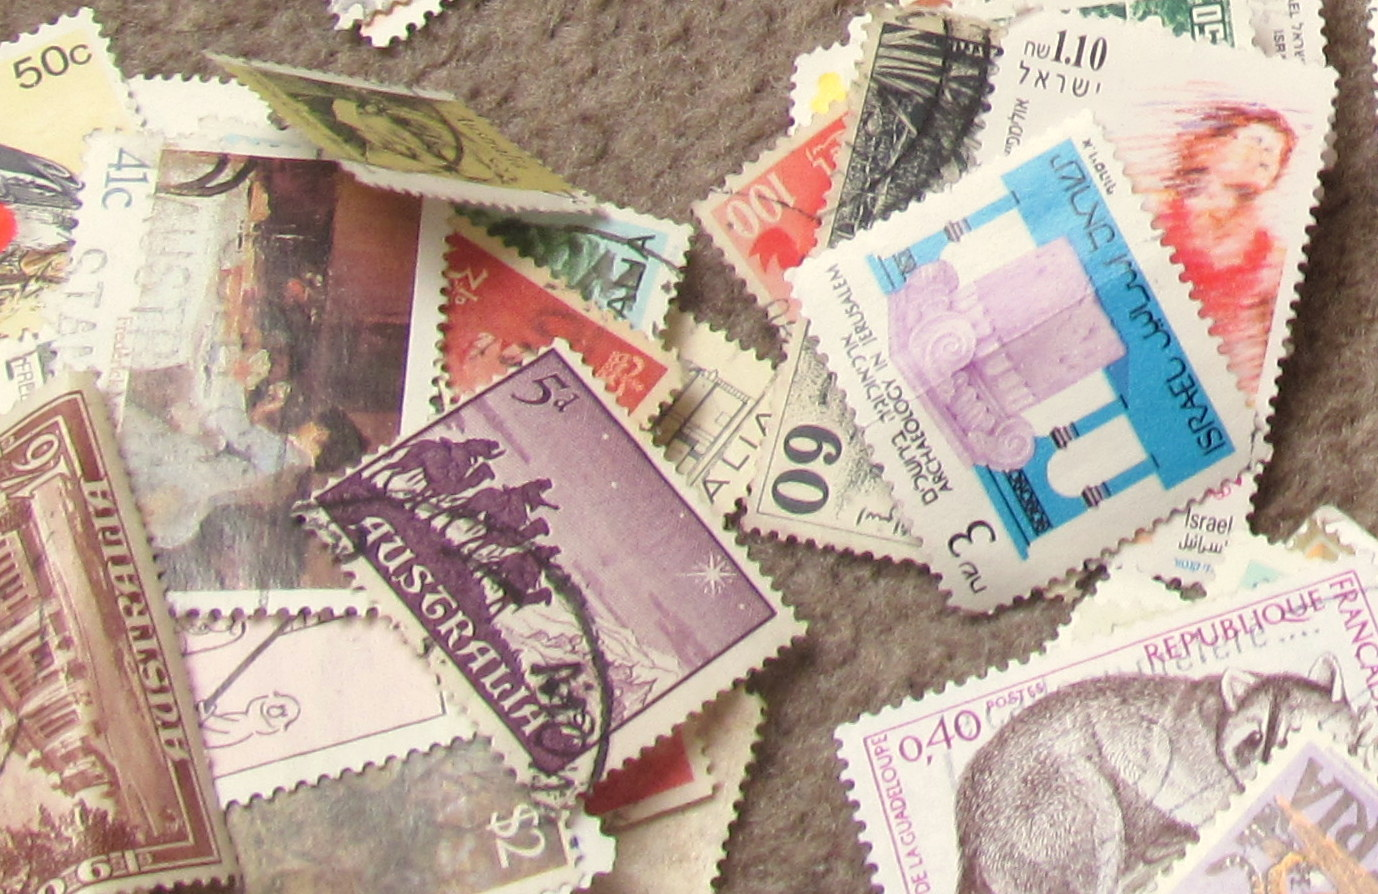 used postage stamps